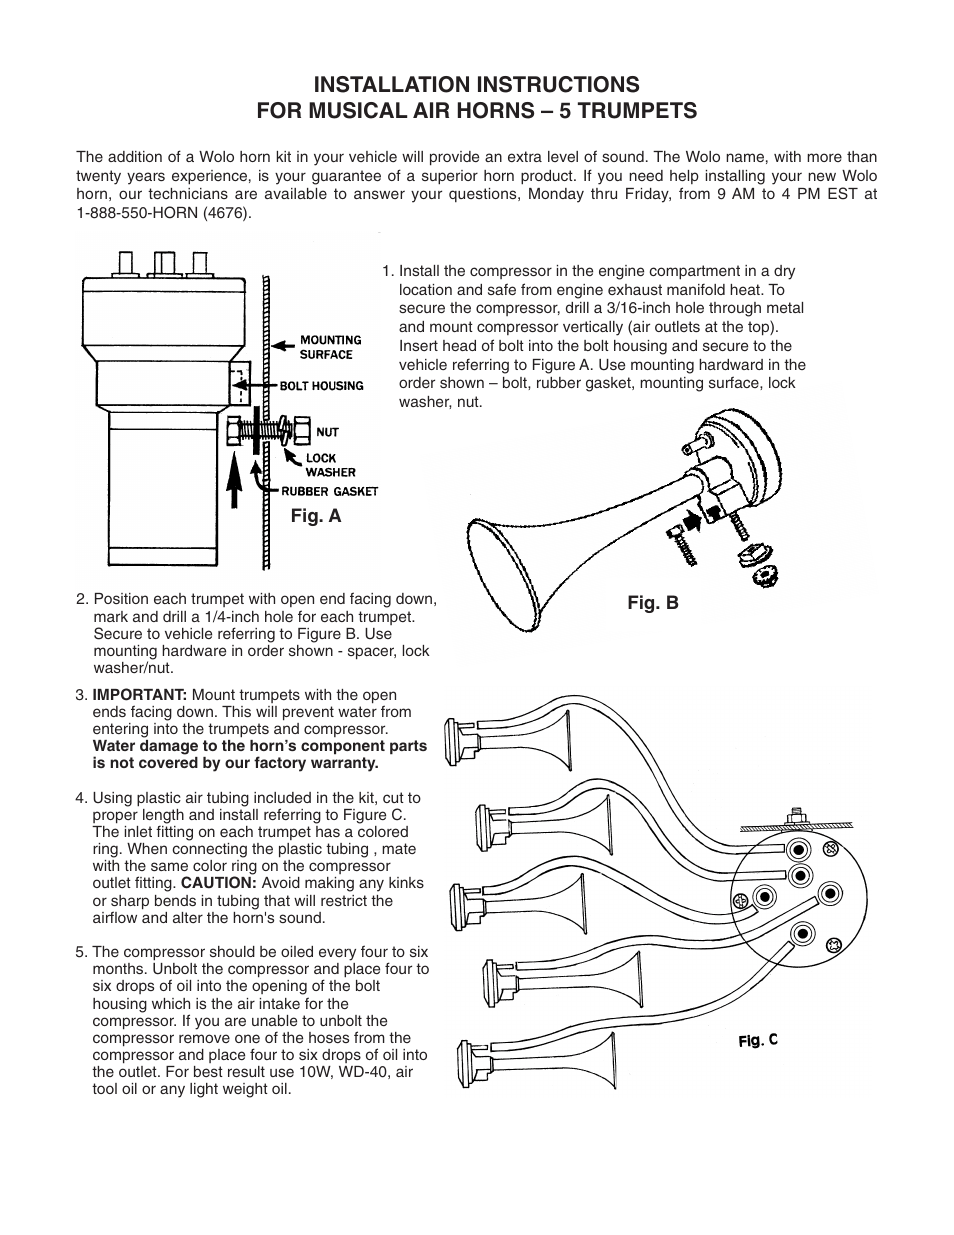 hight resolution of wiring diagram source wolo 425 la cucaracha user manual 2 pages also wolo horn